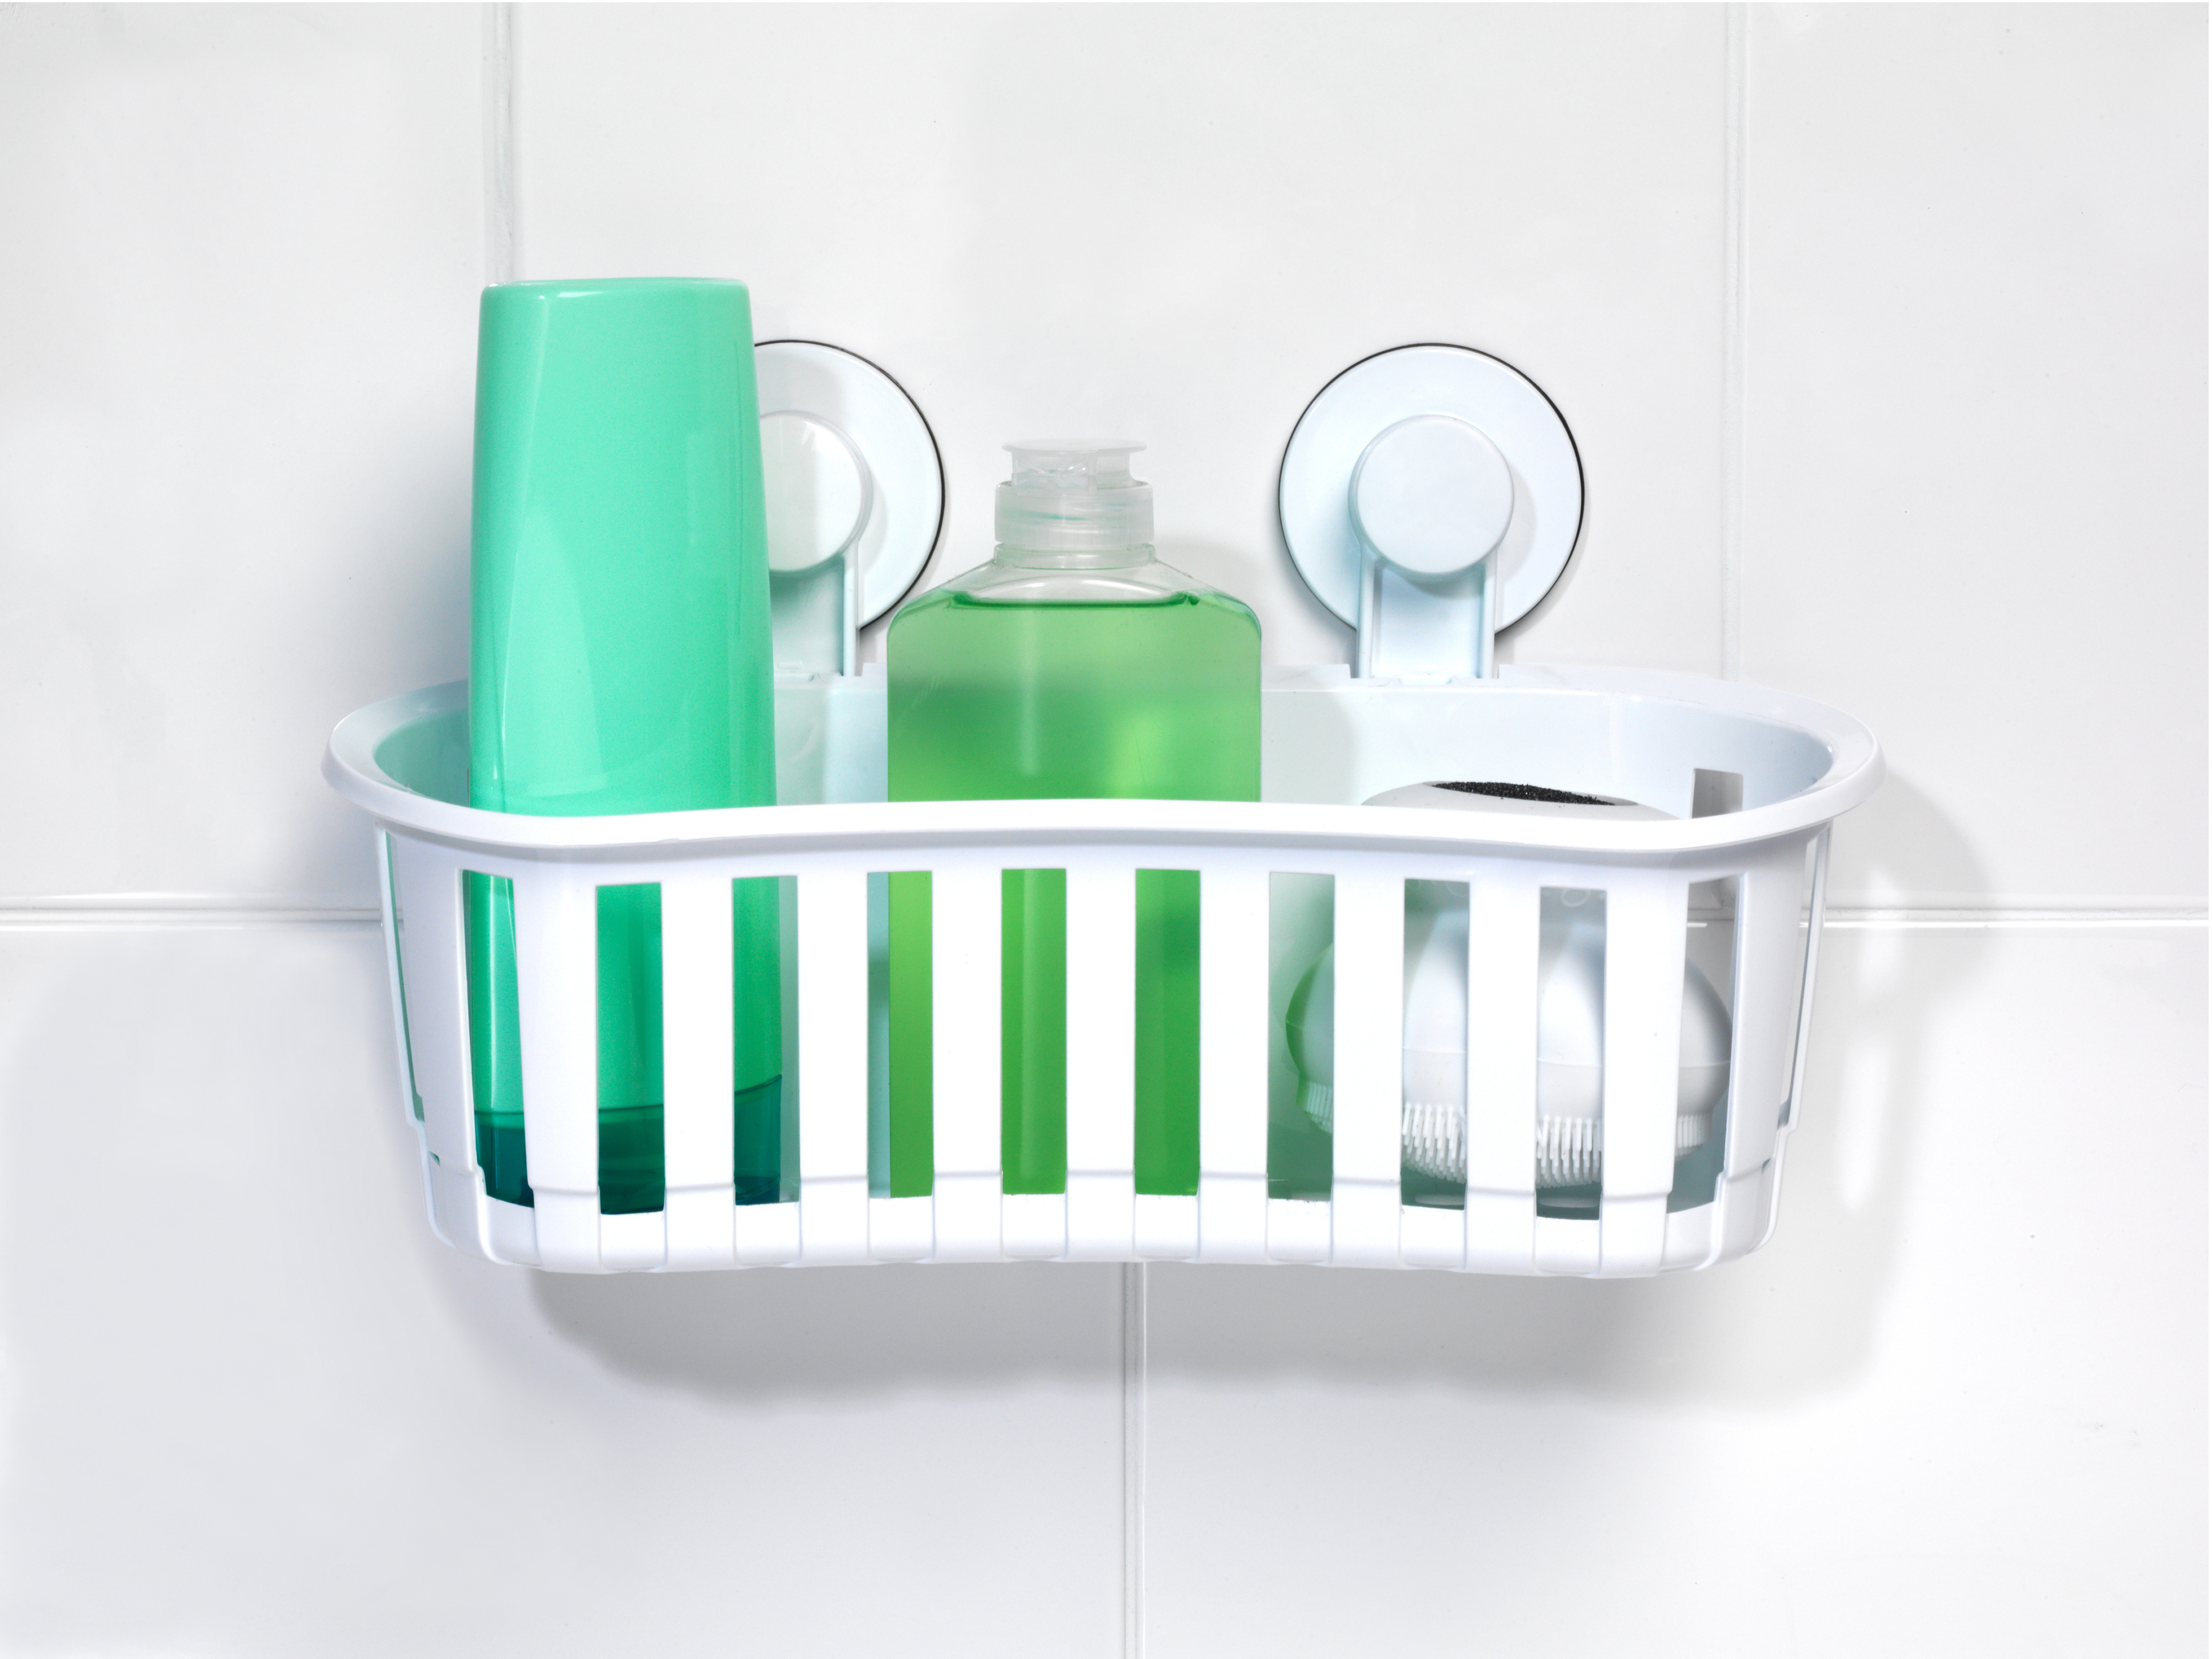 Beldray Bathroom Plastic Suction Shower Basket And Soap